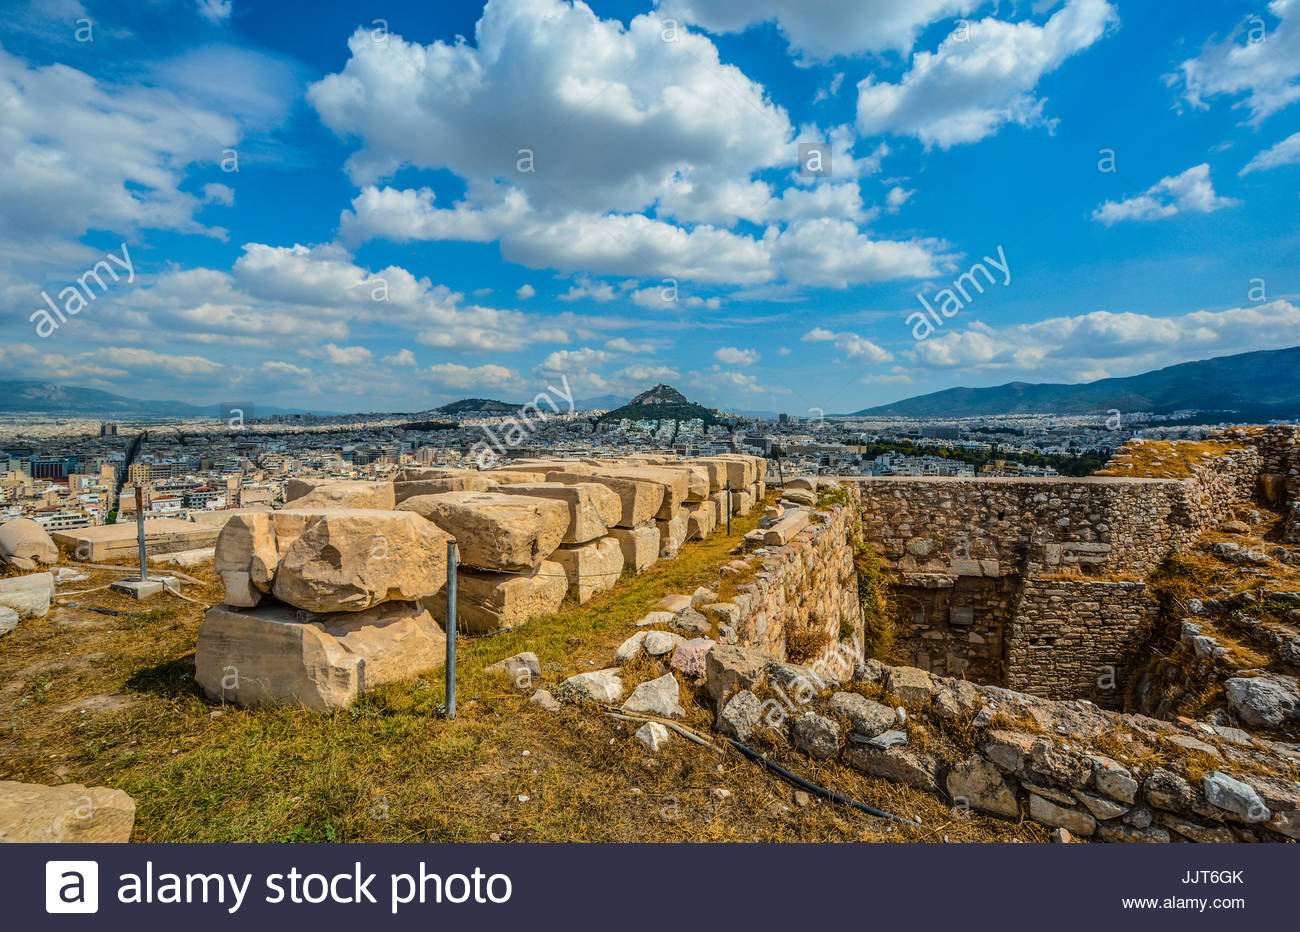 View of Likavitos Hill from Acropolis Hill in Athens Greece on a warm summer day with powder blue skies - Stock Image